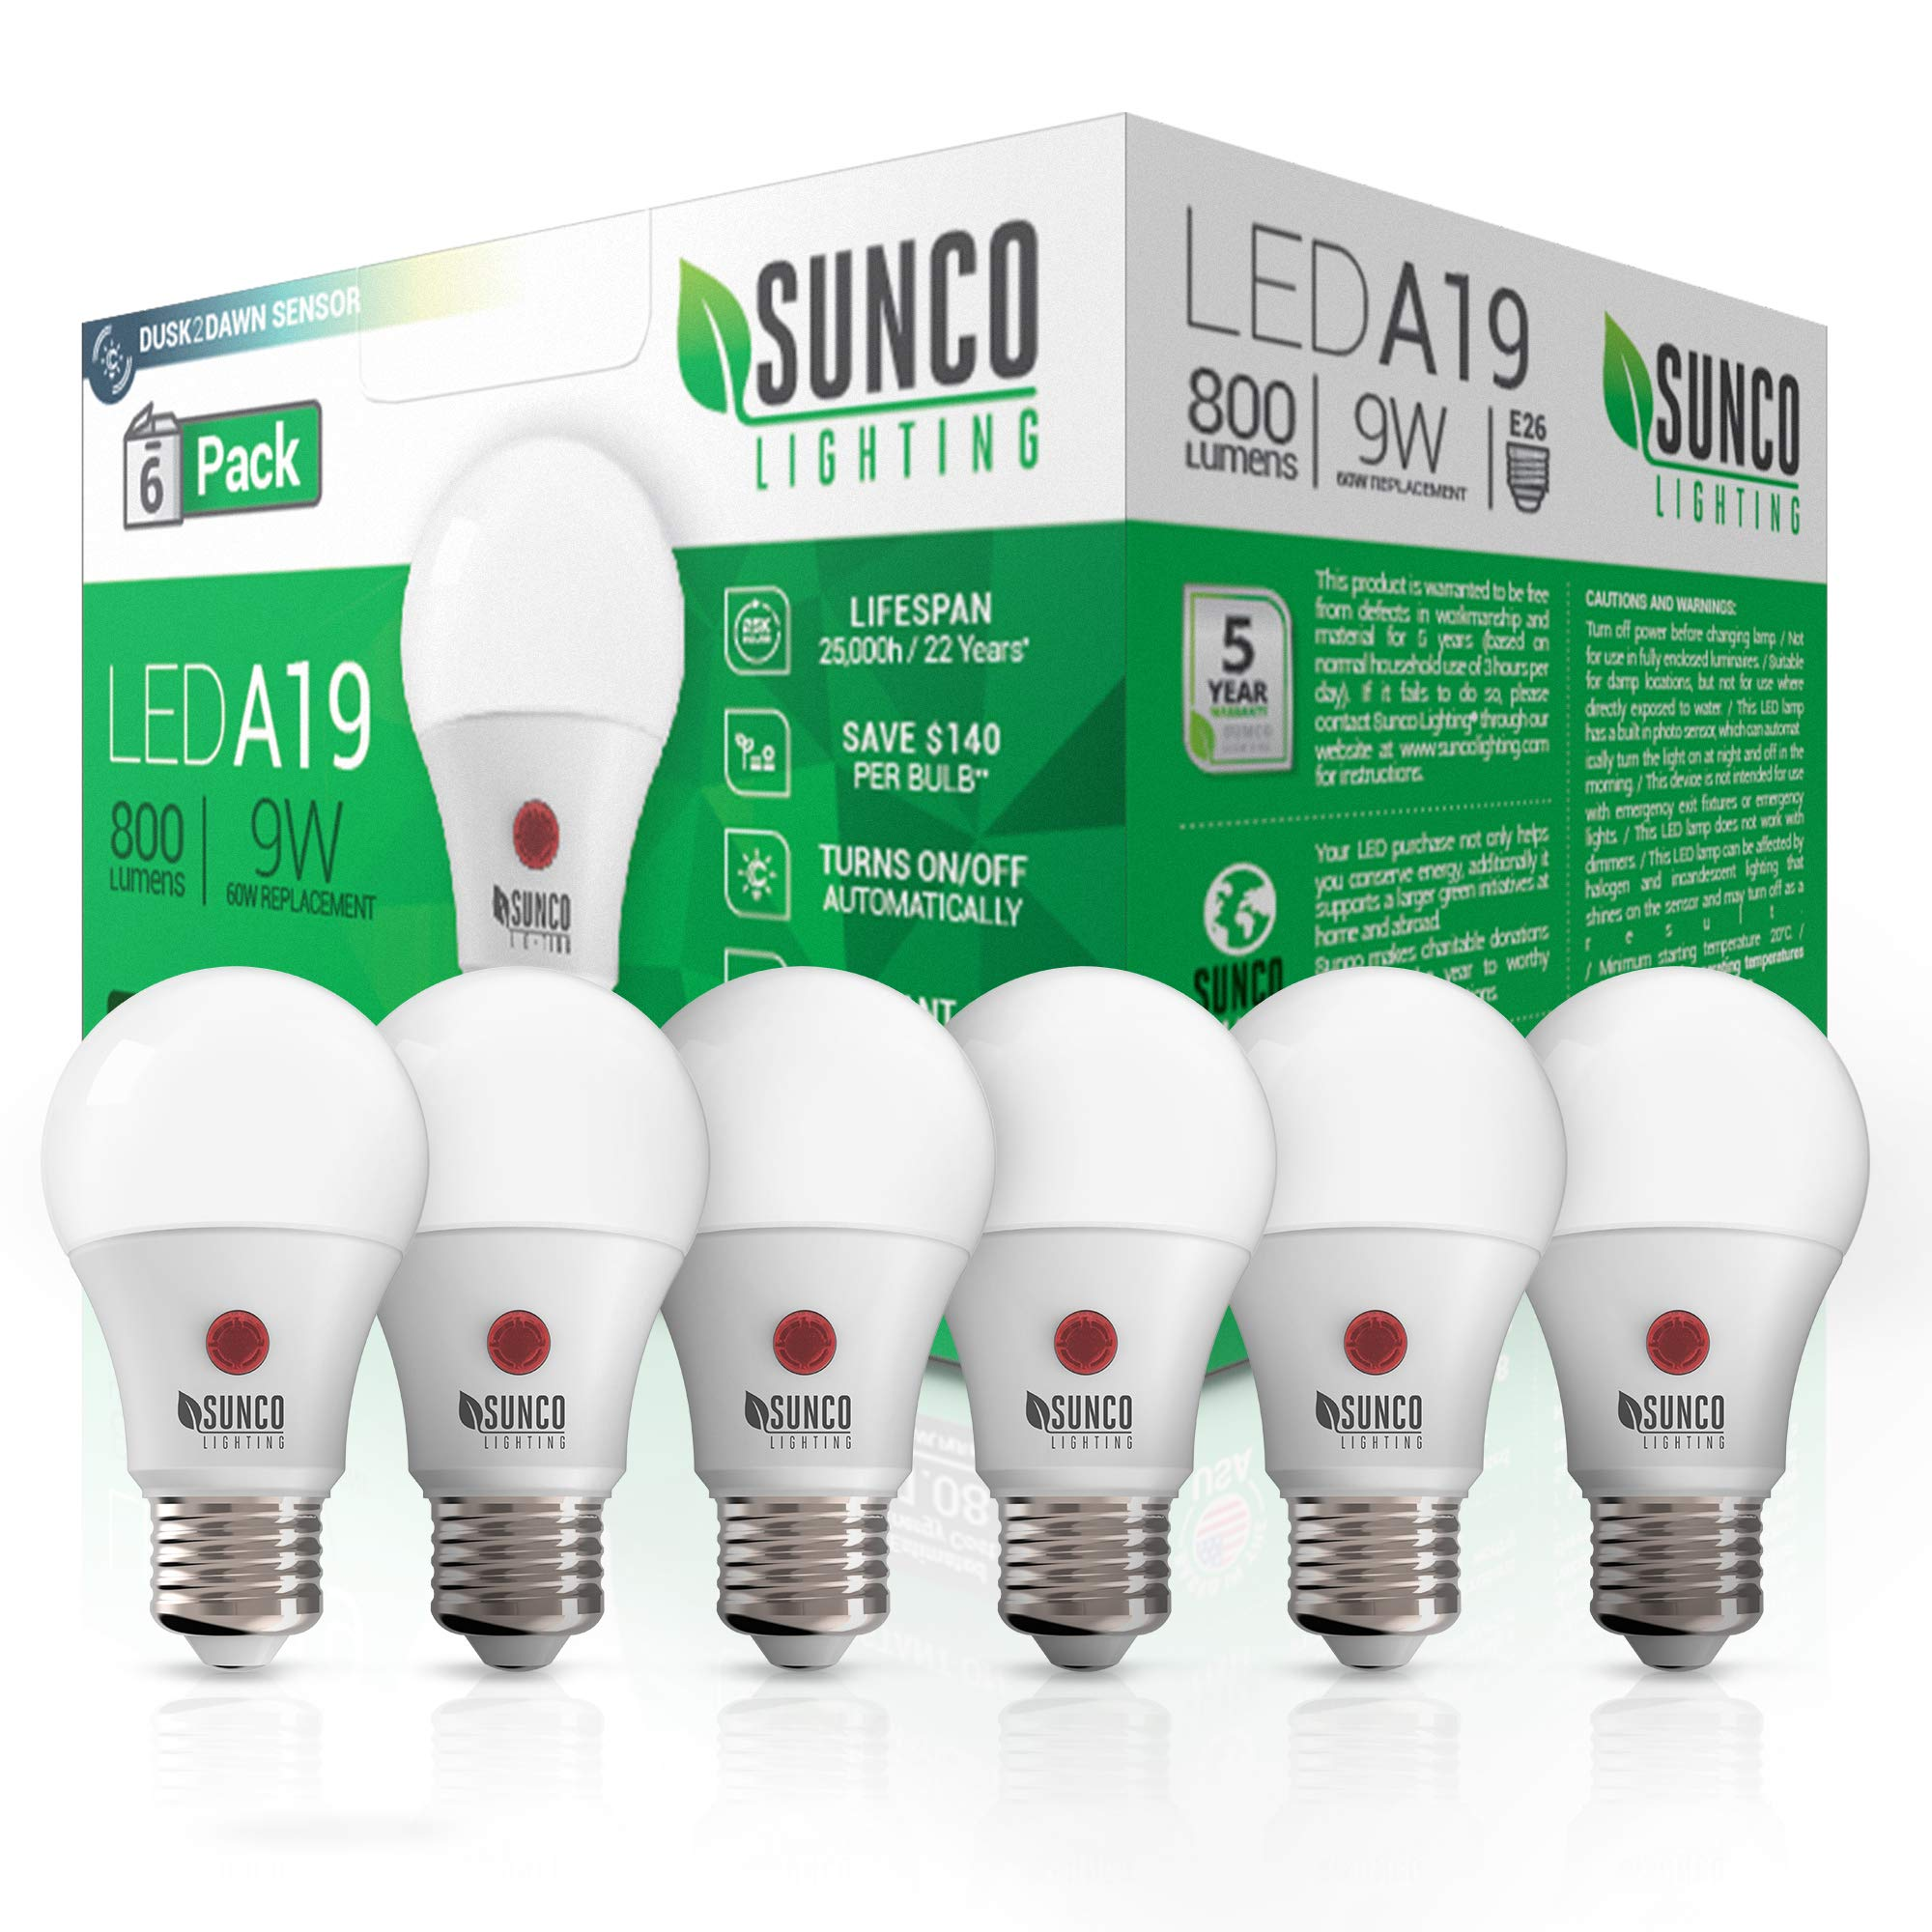 Sunco Lighting 6 Pack A19 LED Bulb with Dusk-to-Dawn, 9W=60W, 800 LM, 3000K Warm White, Auto On/Off Photocell Sensor - UL